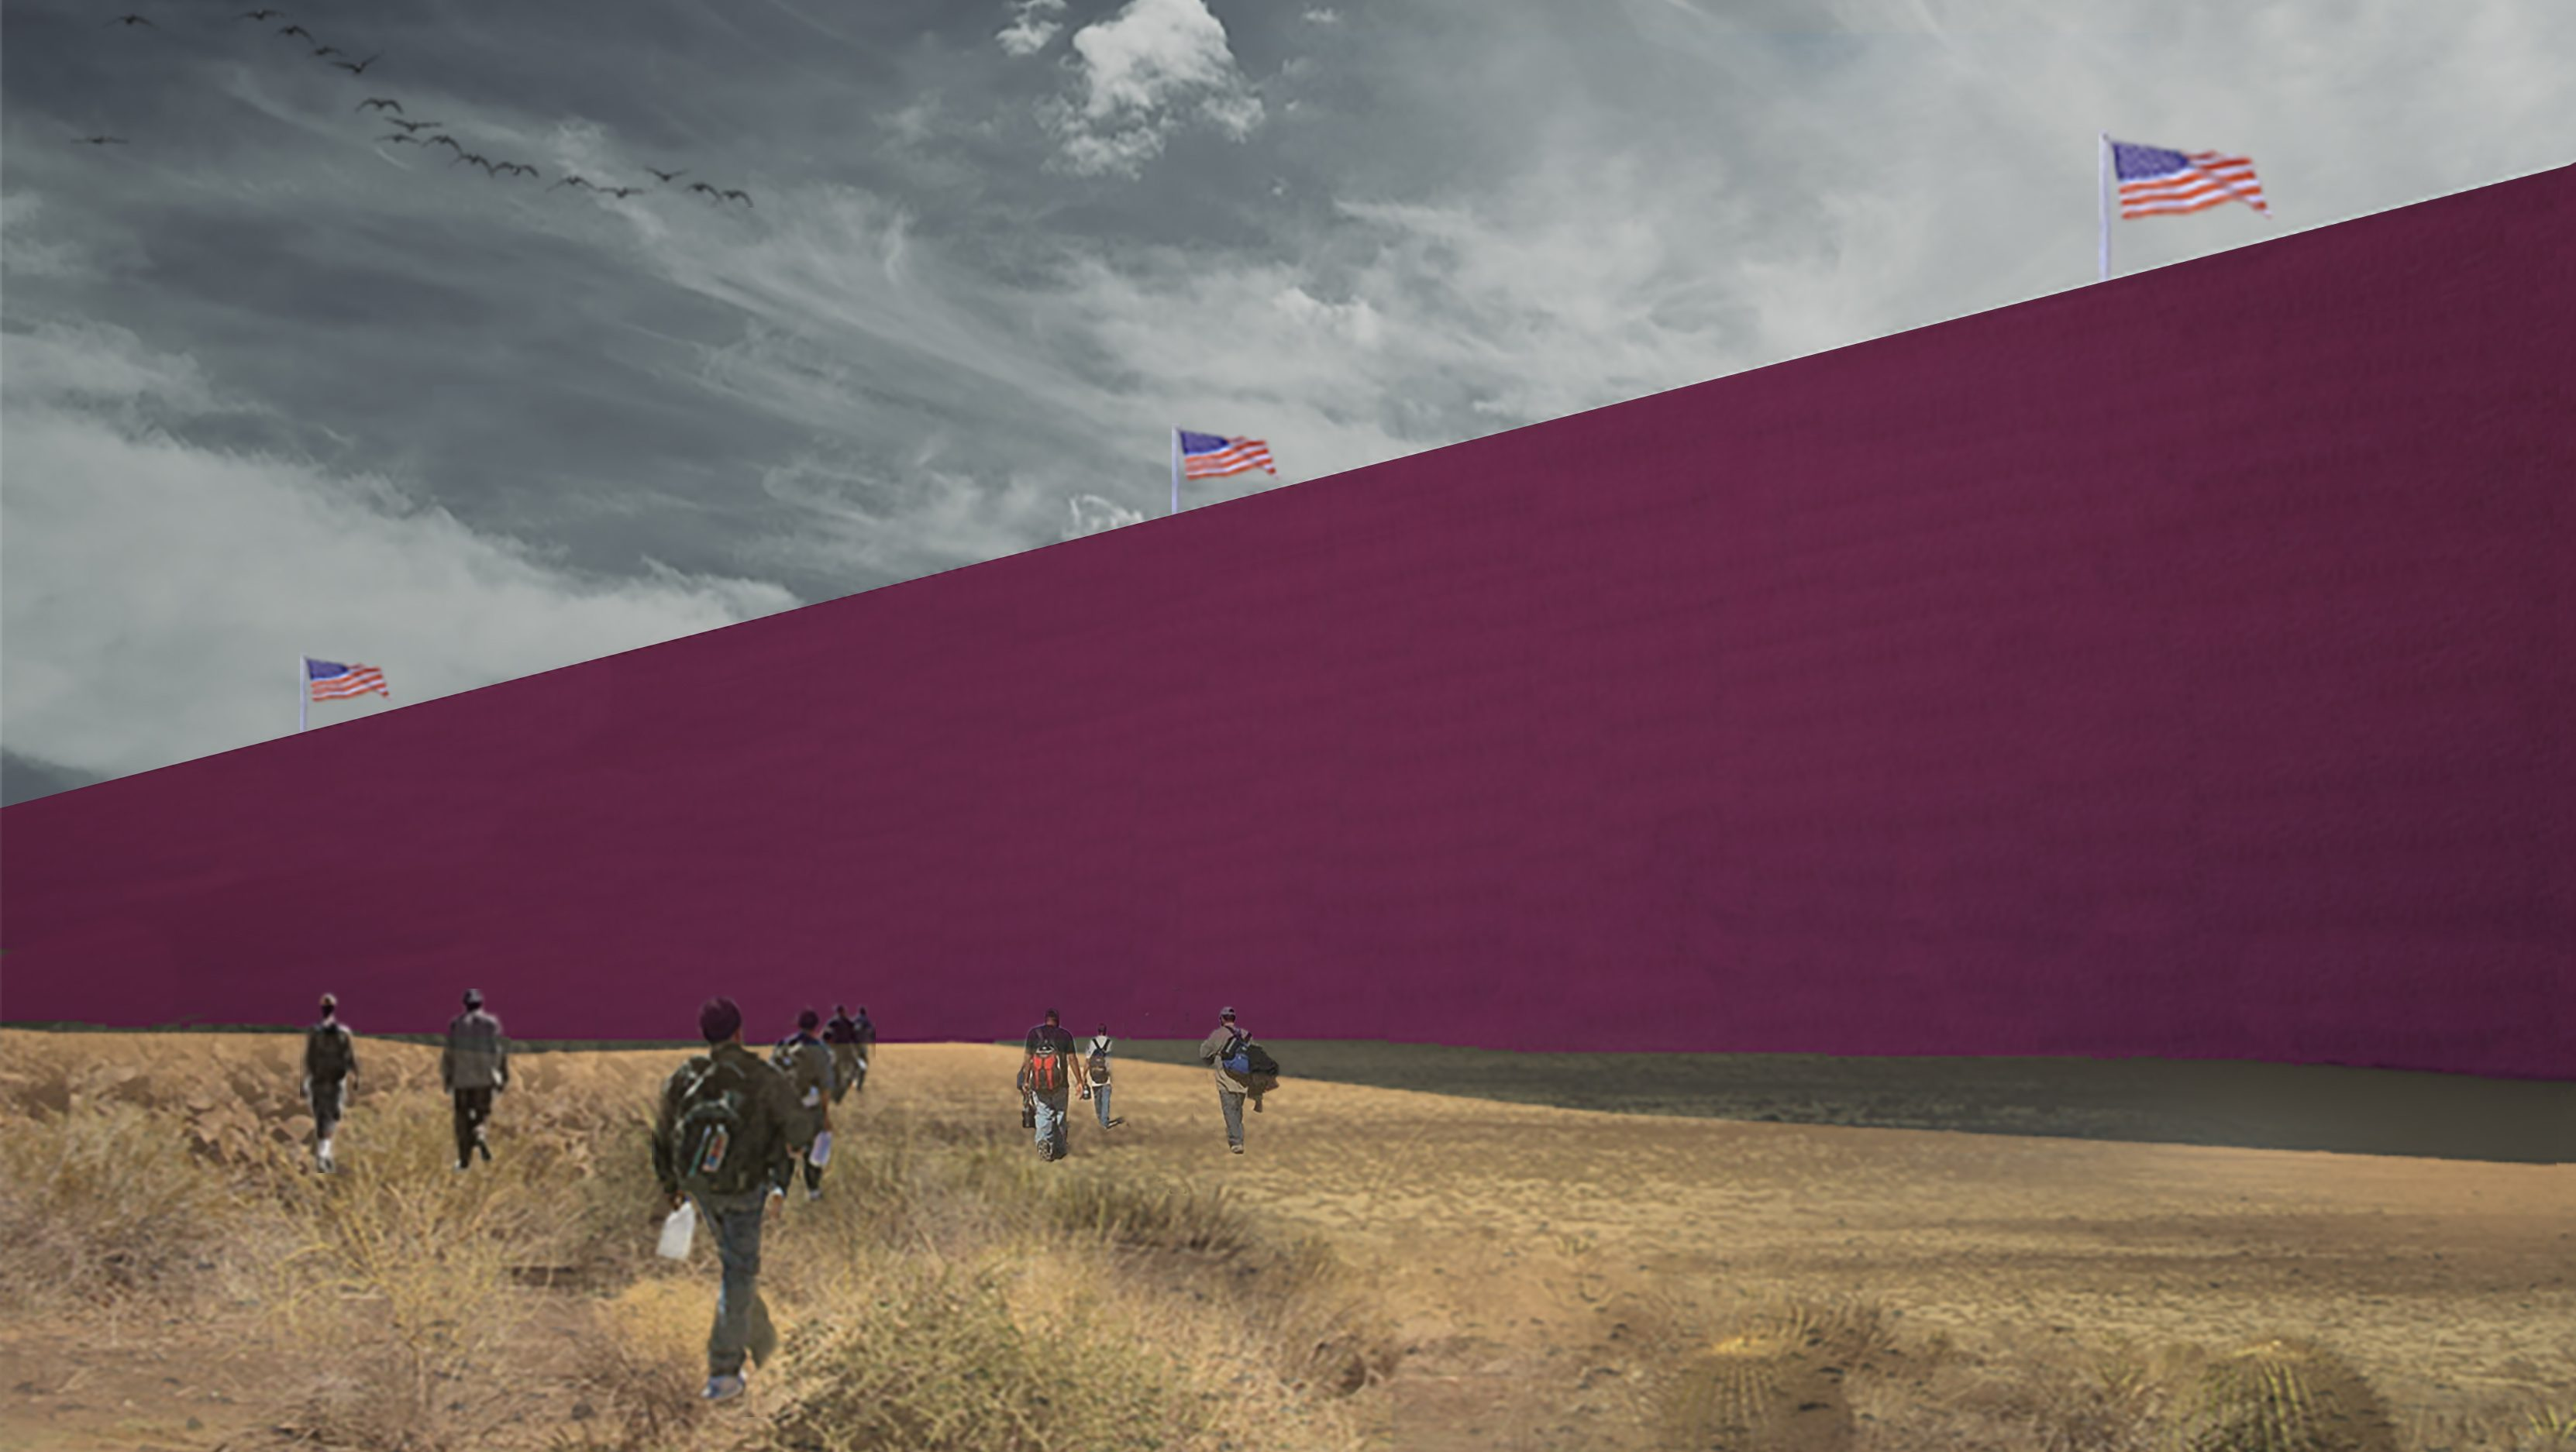 mexican design firm estudio 3 14 created a rendering of donald rh qz com